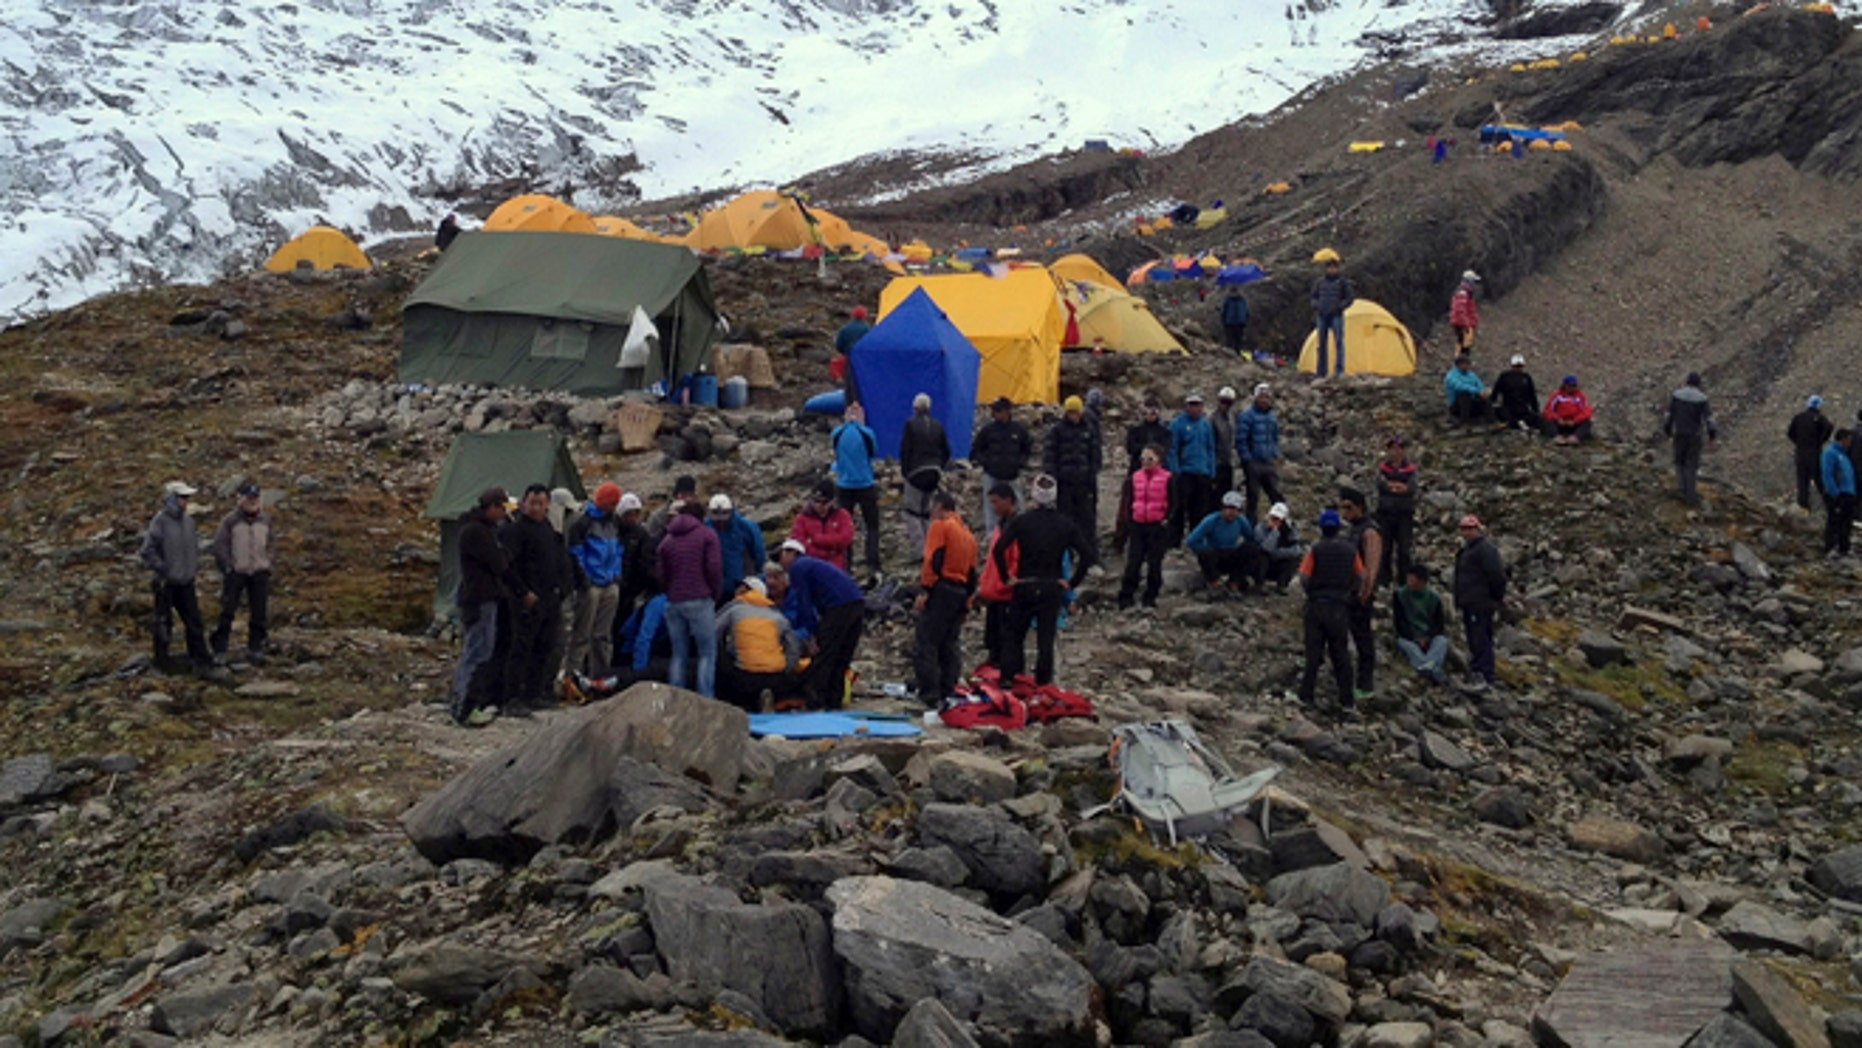 Sept. 23, 2012: In this photo provided by Nepalese airline Simrik Air, rescuers attend to injured victims, unseen, after an avalanche at the base camp of Mount Manaslu in northern Nepal.